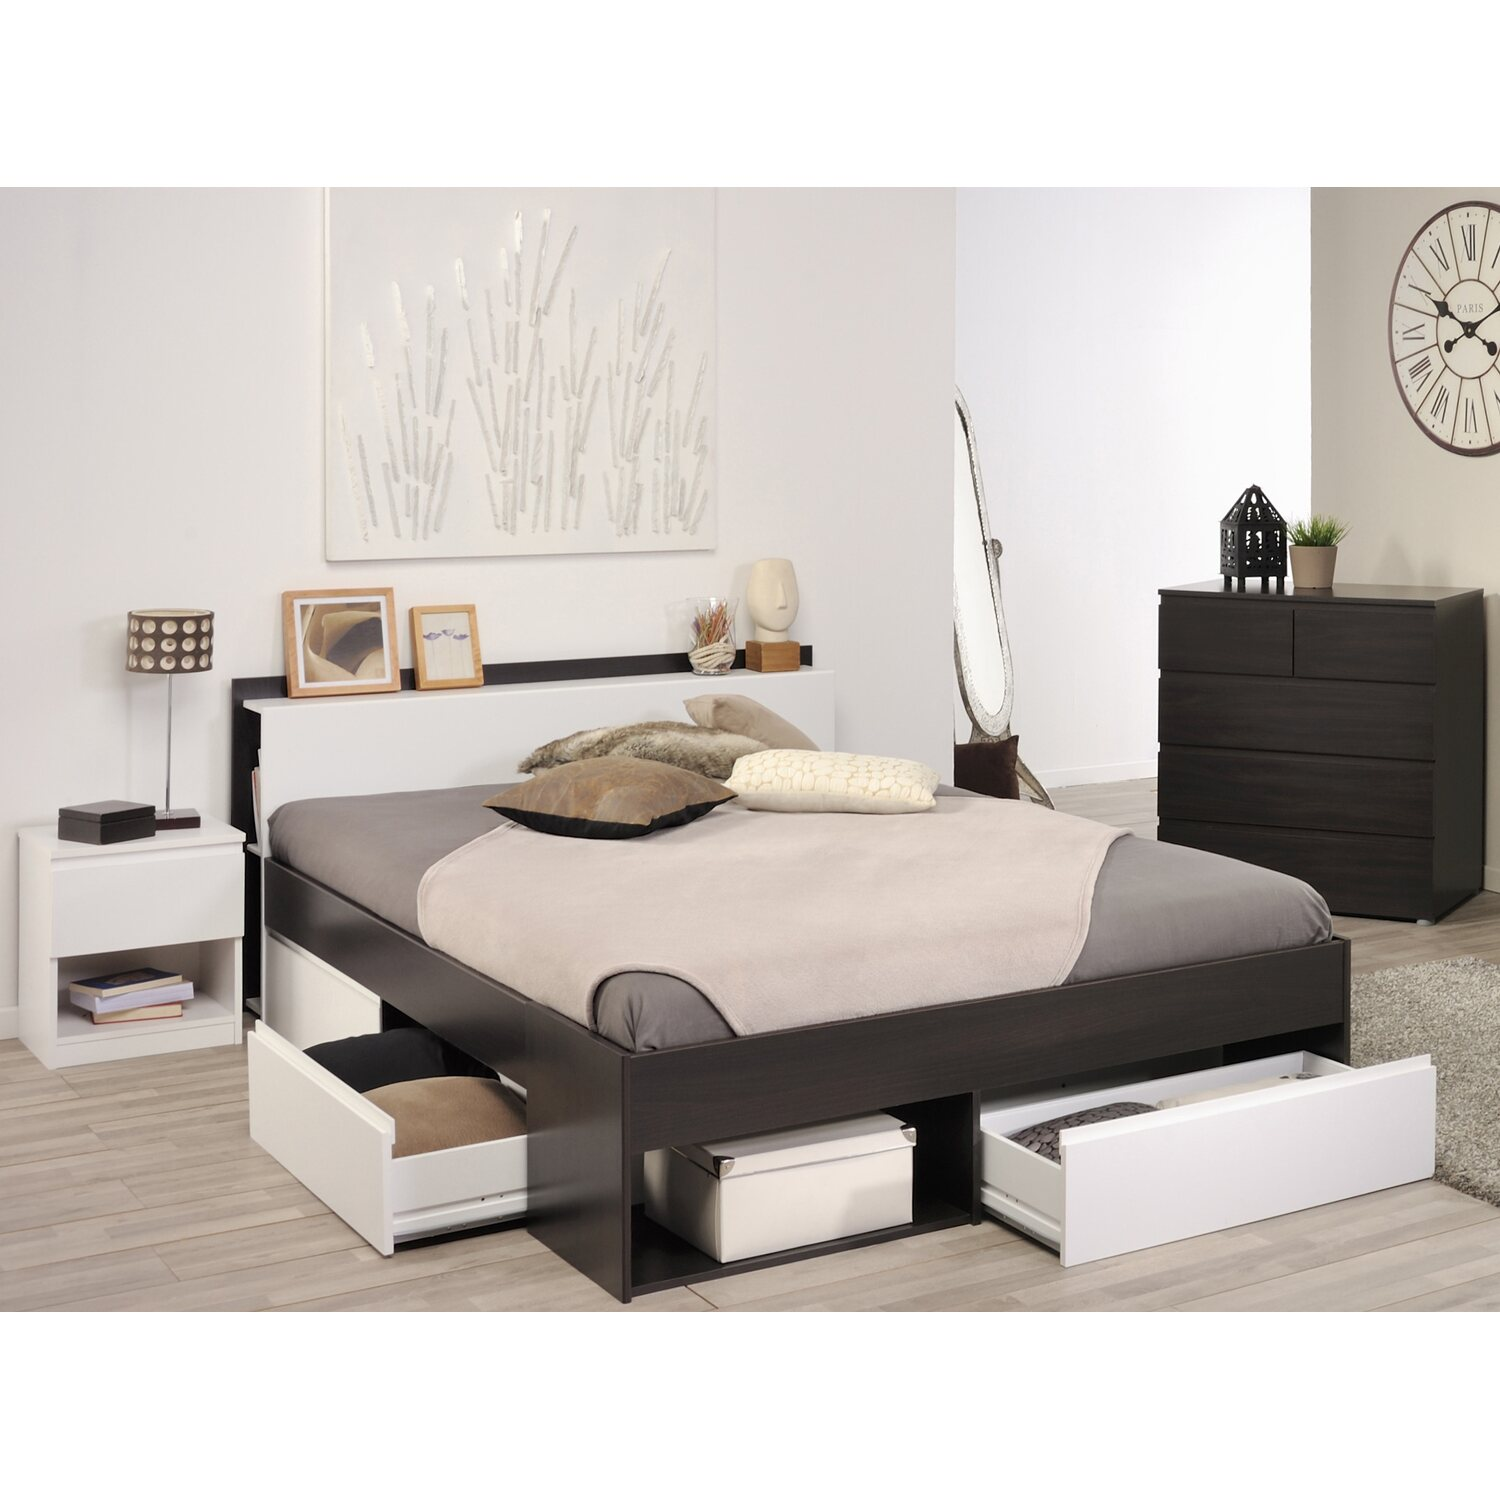 parisot schlafzimmer set most xviii 3 teilig kaffee wei kaufen bei obi. Black Bedroom Furniture Sets. Home Design Ideas